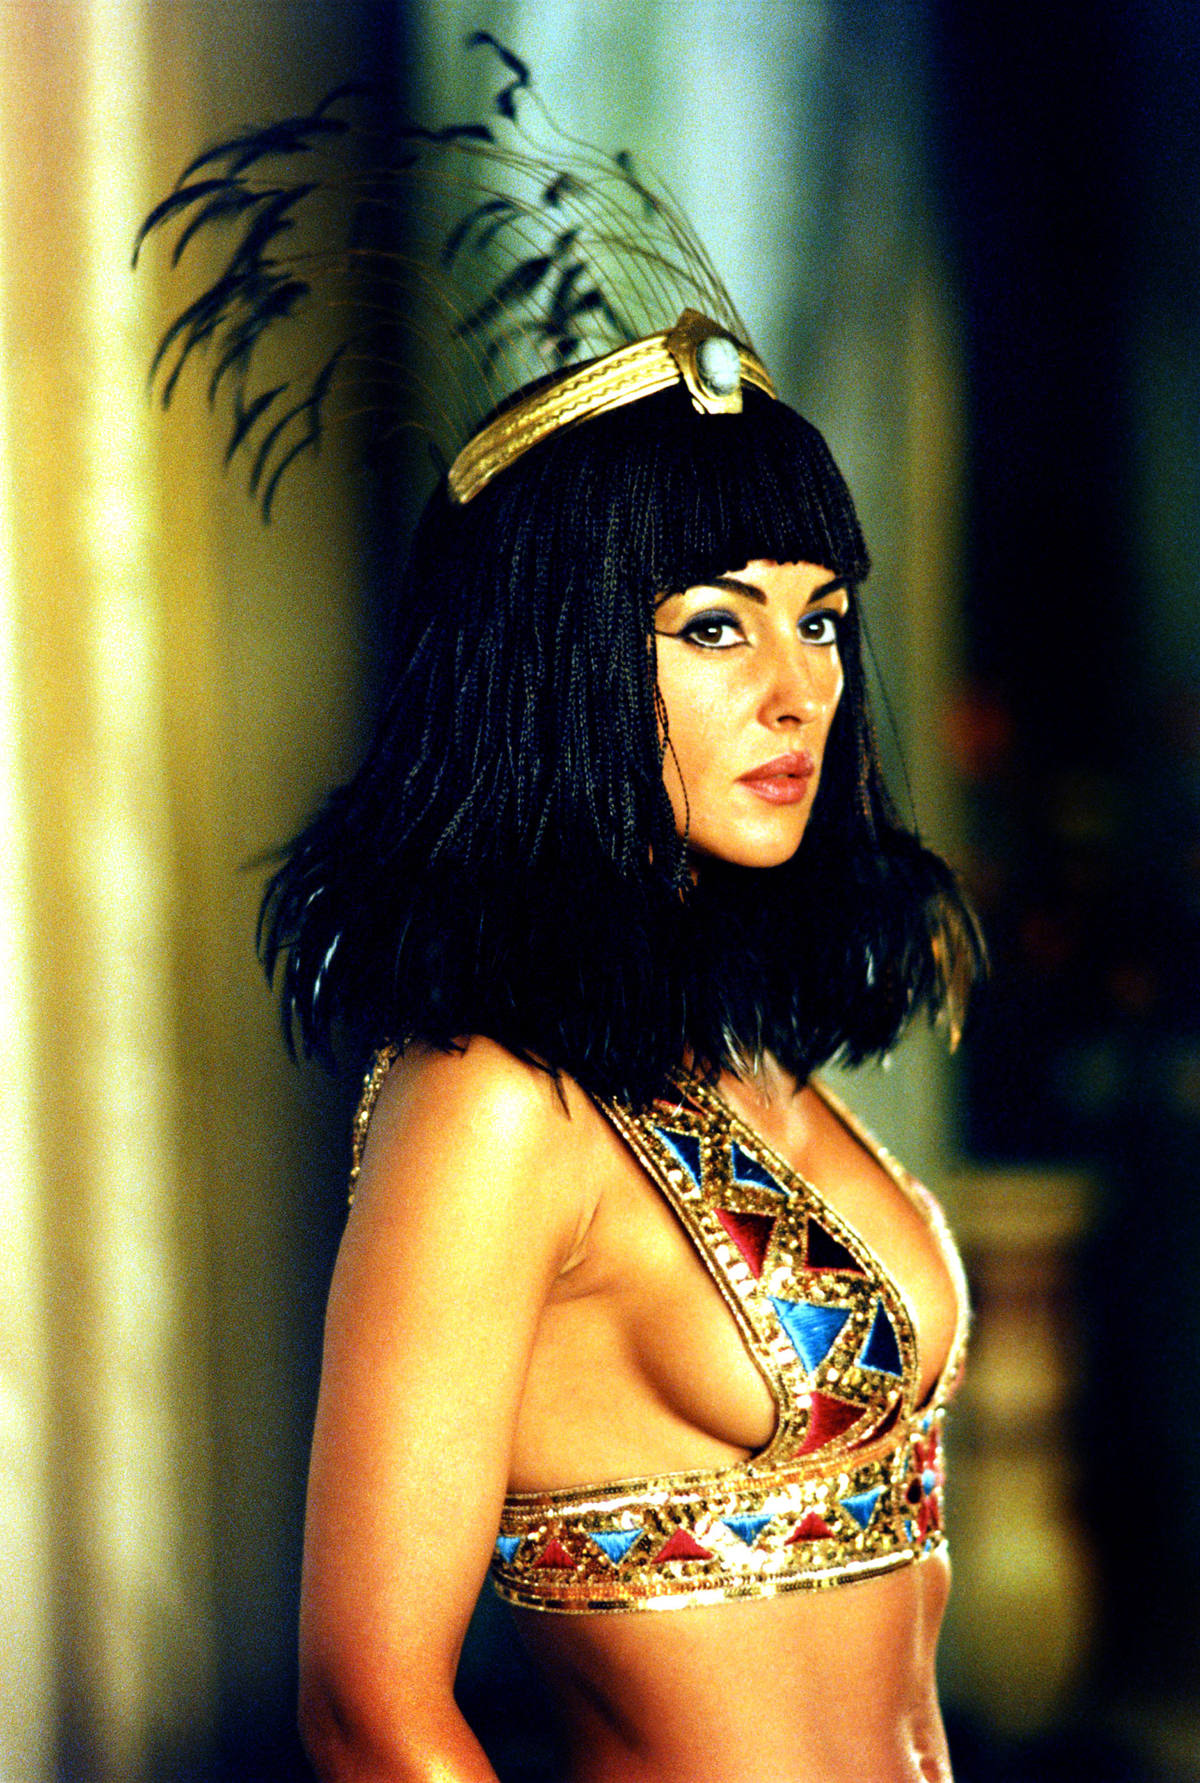 In Asterix and Obelix: Mission Cleopatra, 2002